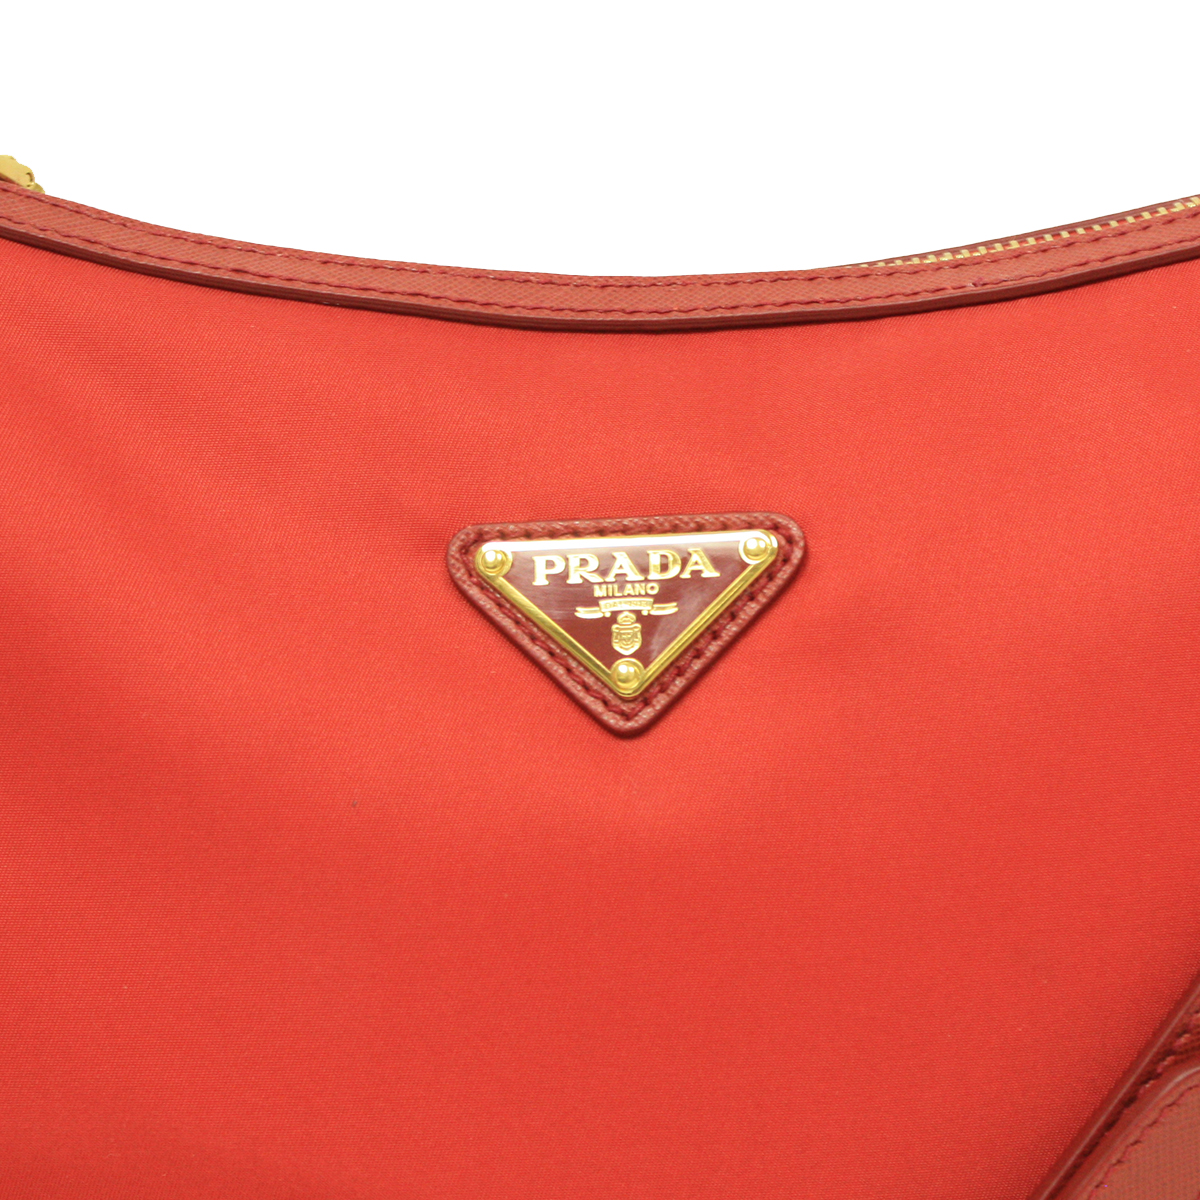 red prada messenger bag